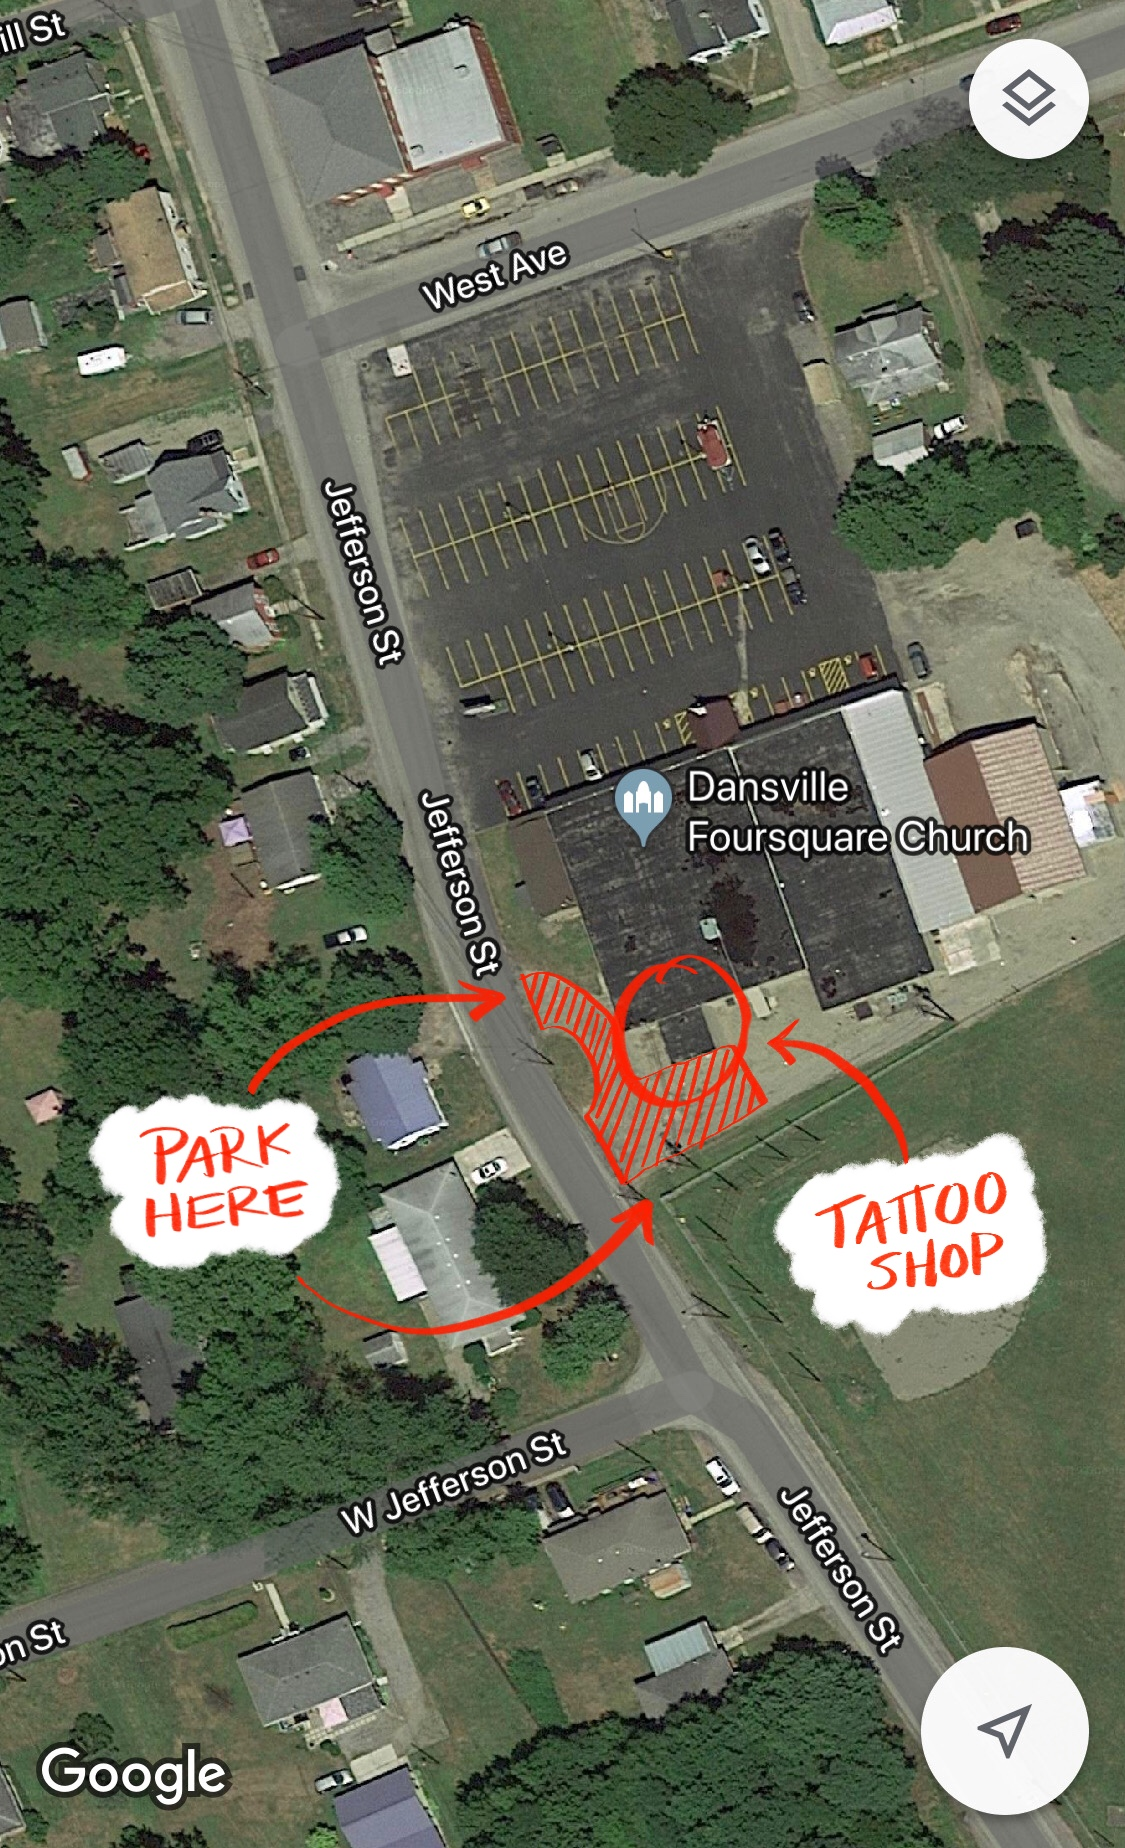 Shop Location - - I share an address with Dansville Foursquare Church -49 West Ave. Dansville, NY 14437- Entrance off of Jefferson St. -